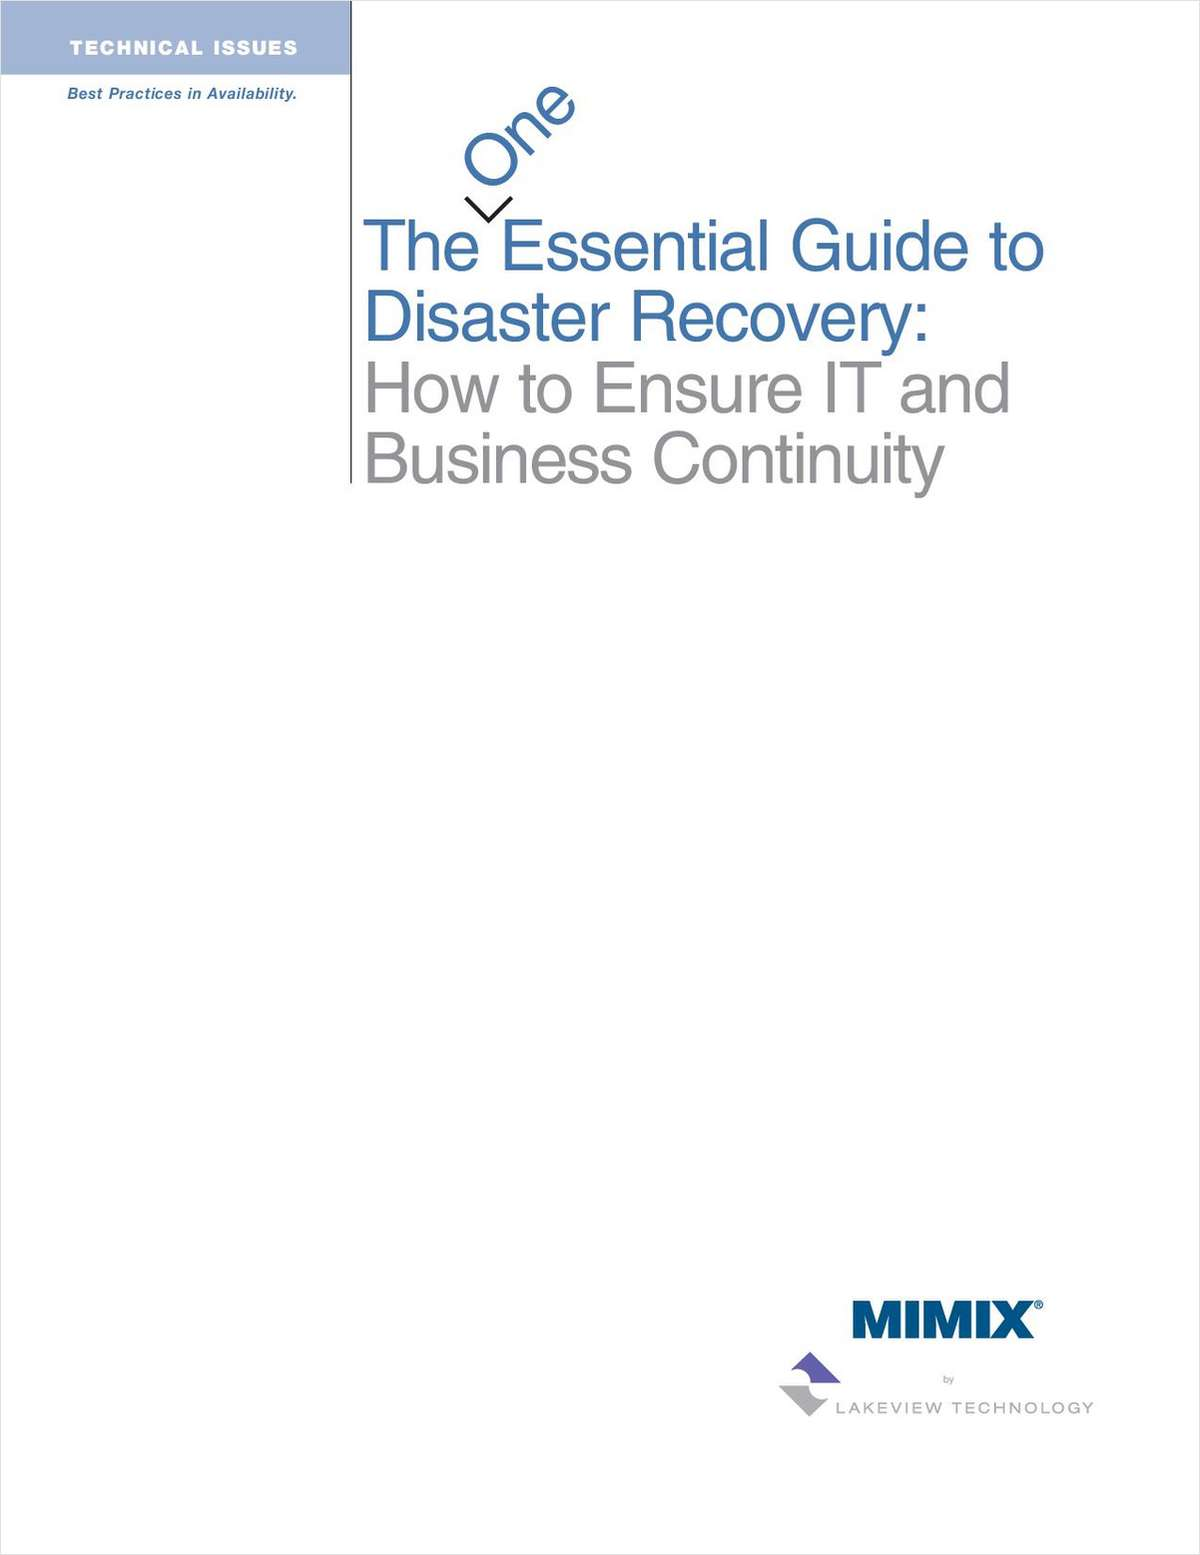 Essential Guide to Disaster Recovery in System i (AS/400) and AIX environments